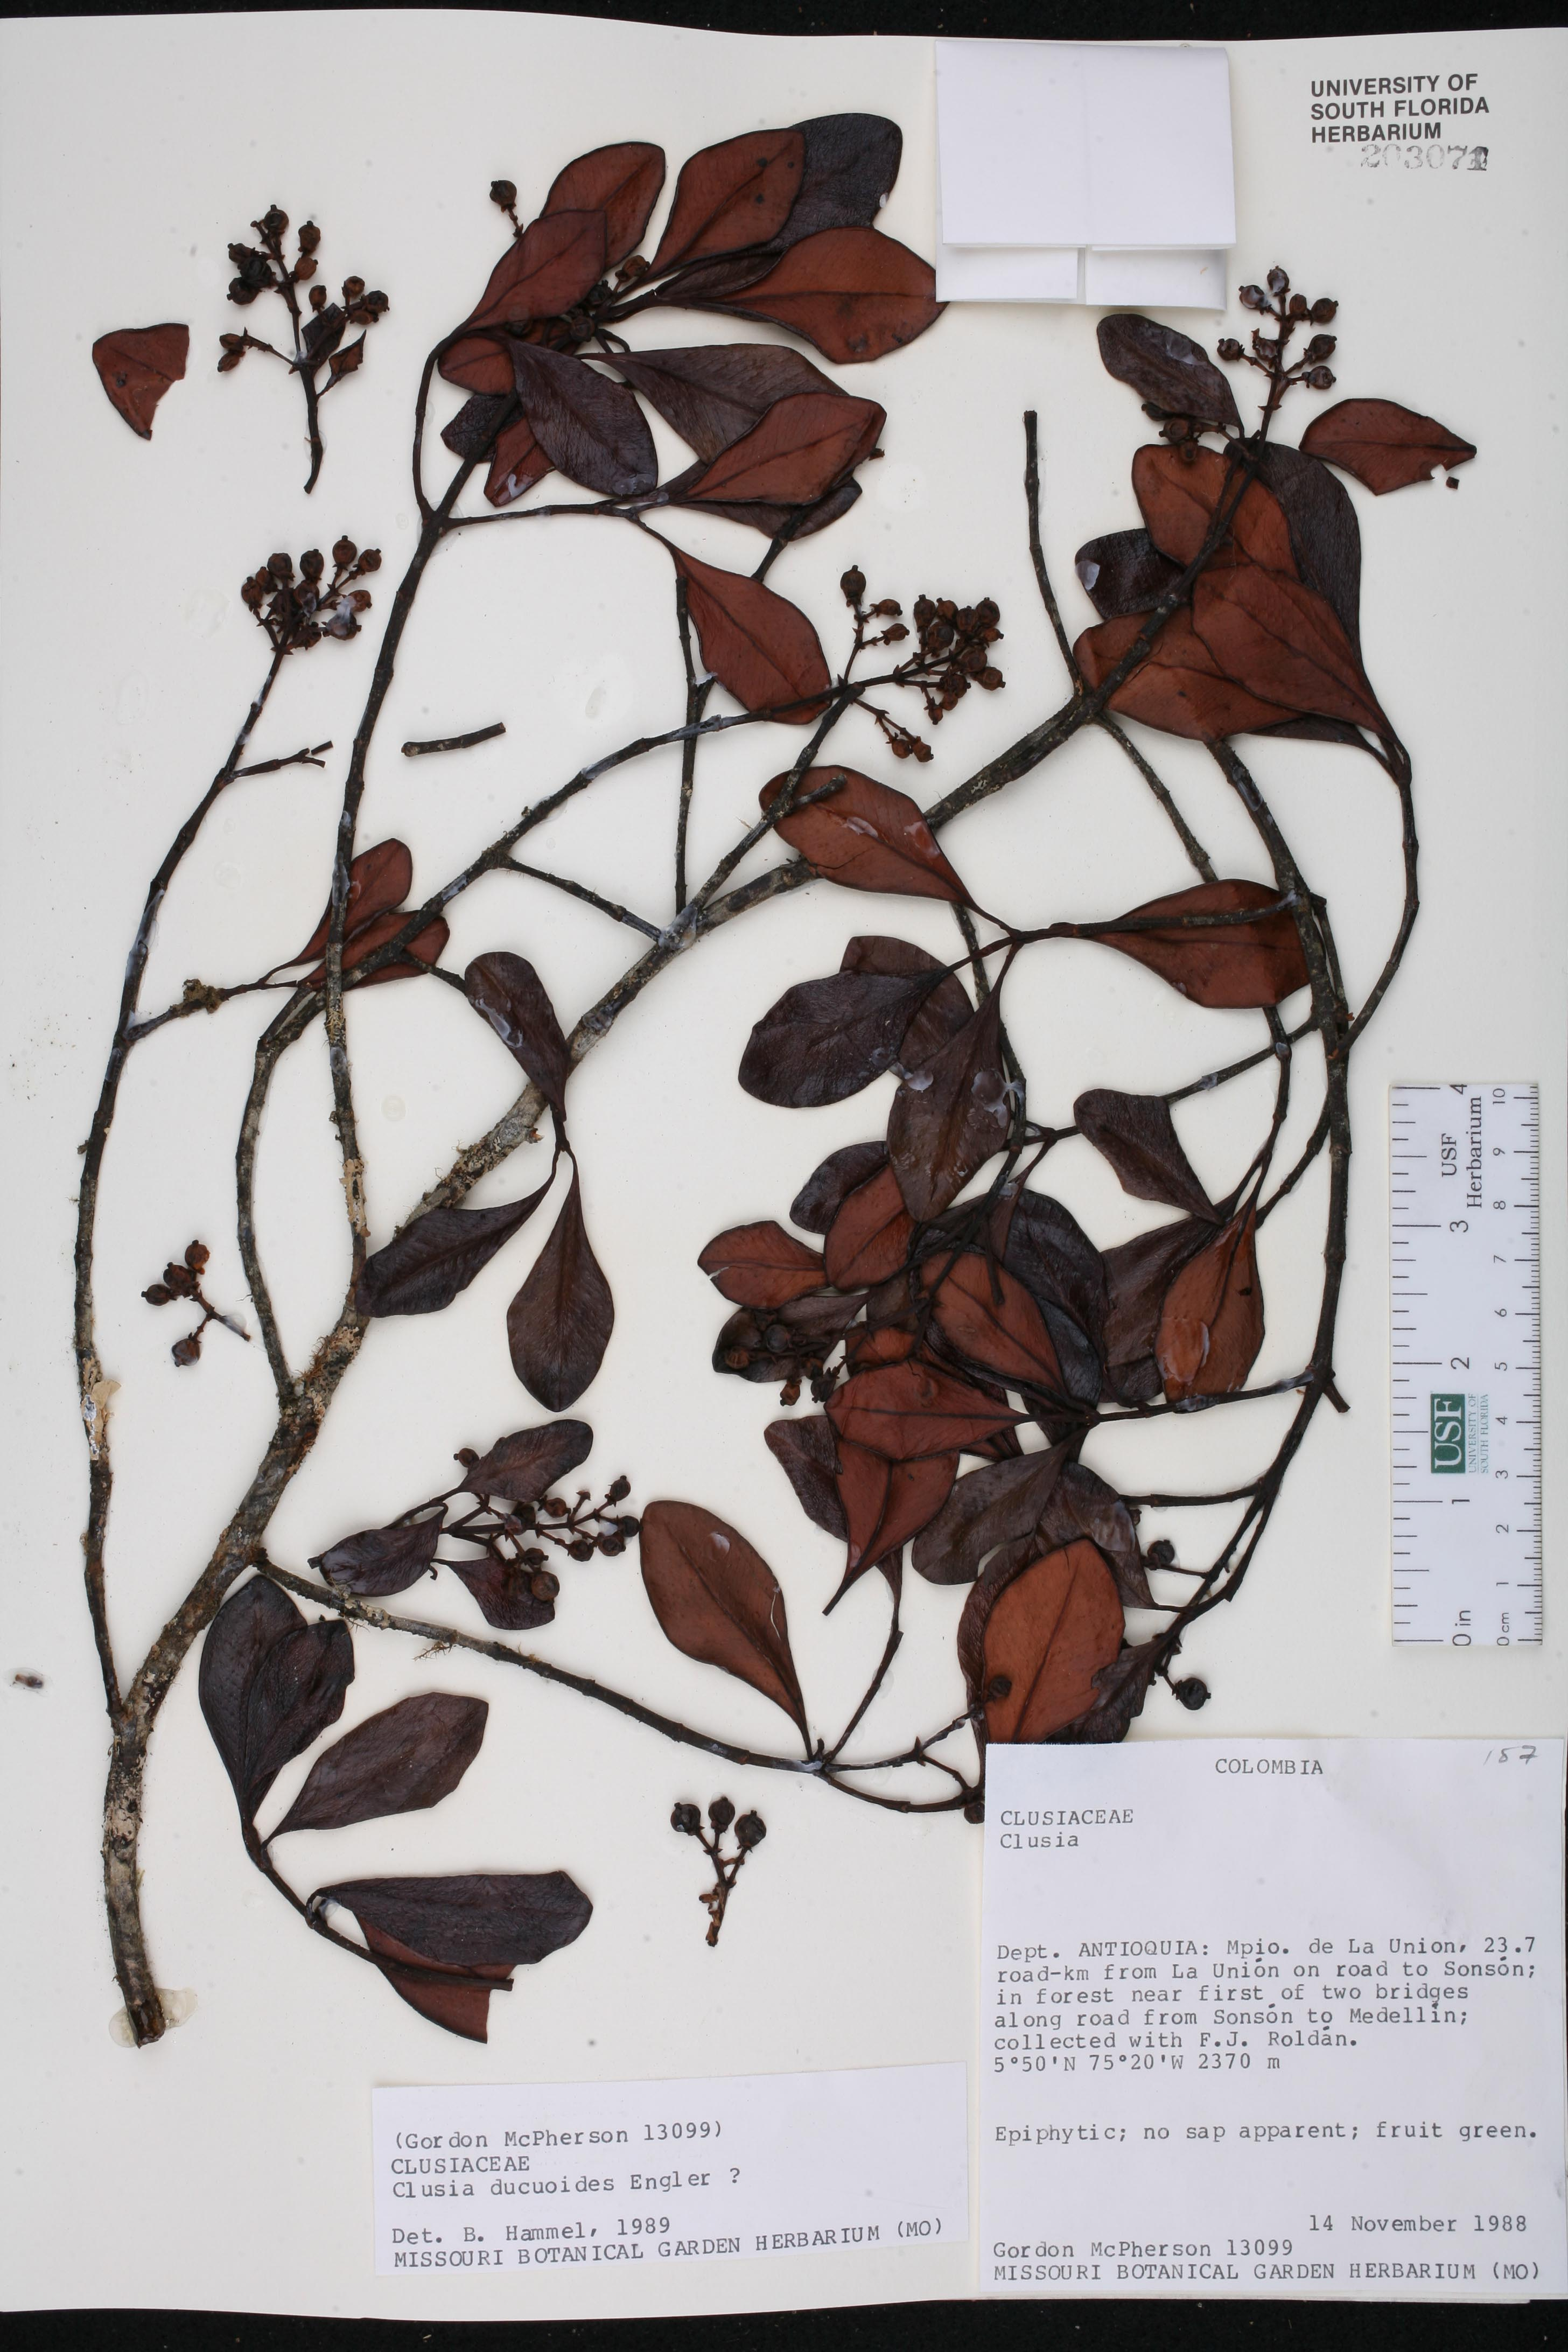 Clusia ducuoides image